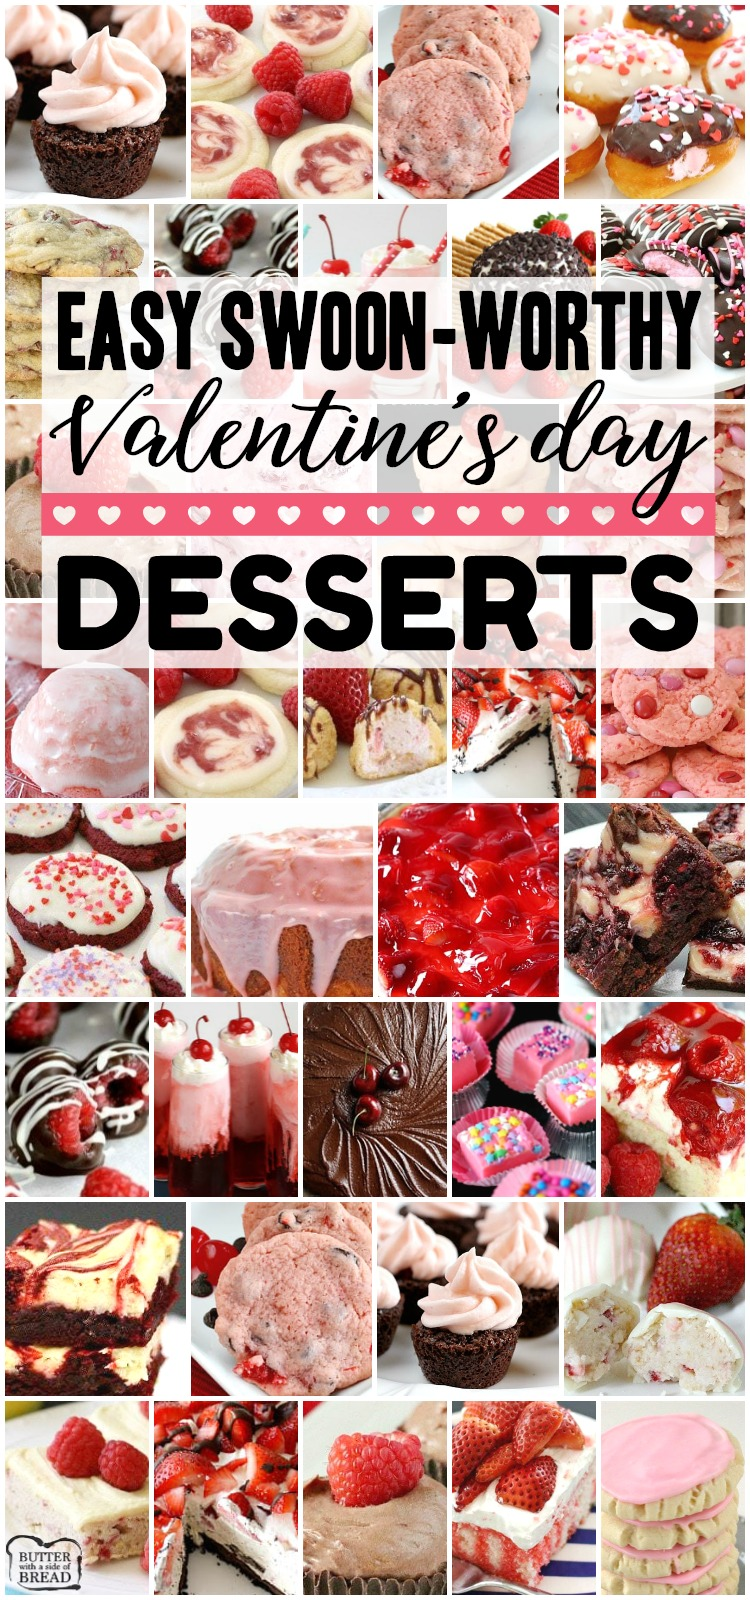 EASY SWOON-WORTHY VALENTINE'S DAY DESSERTS